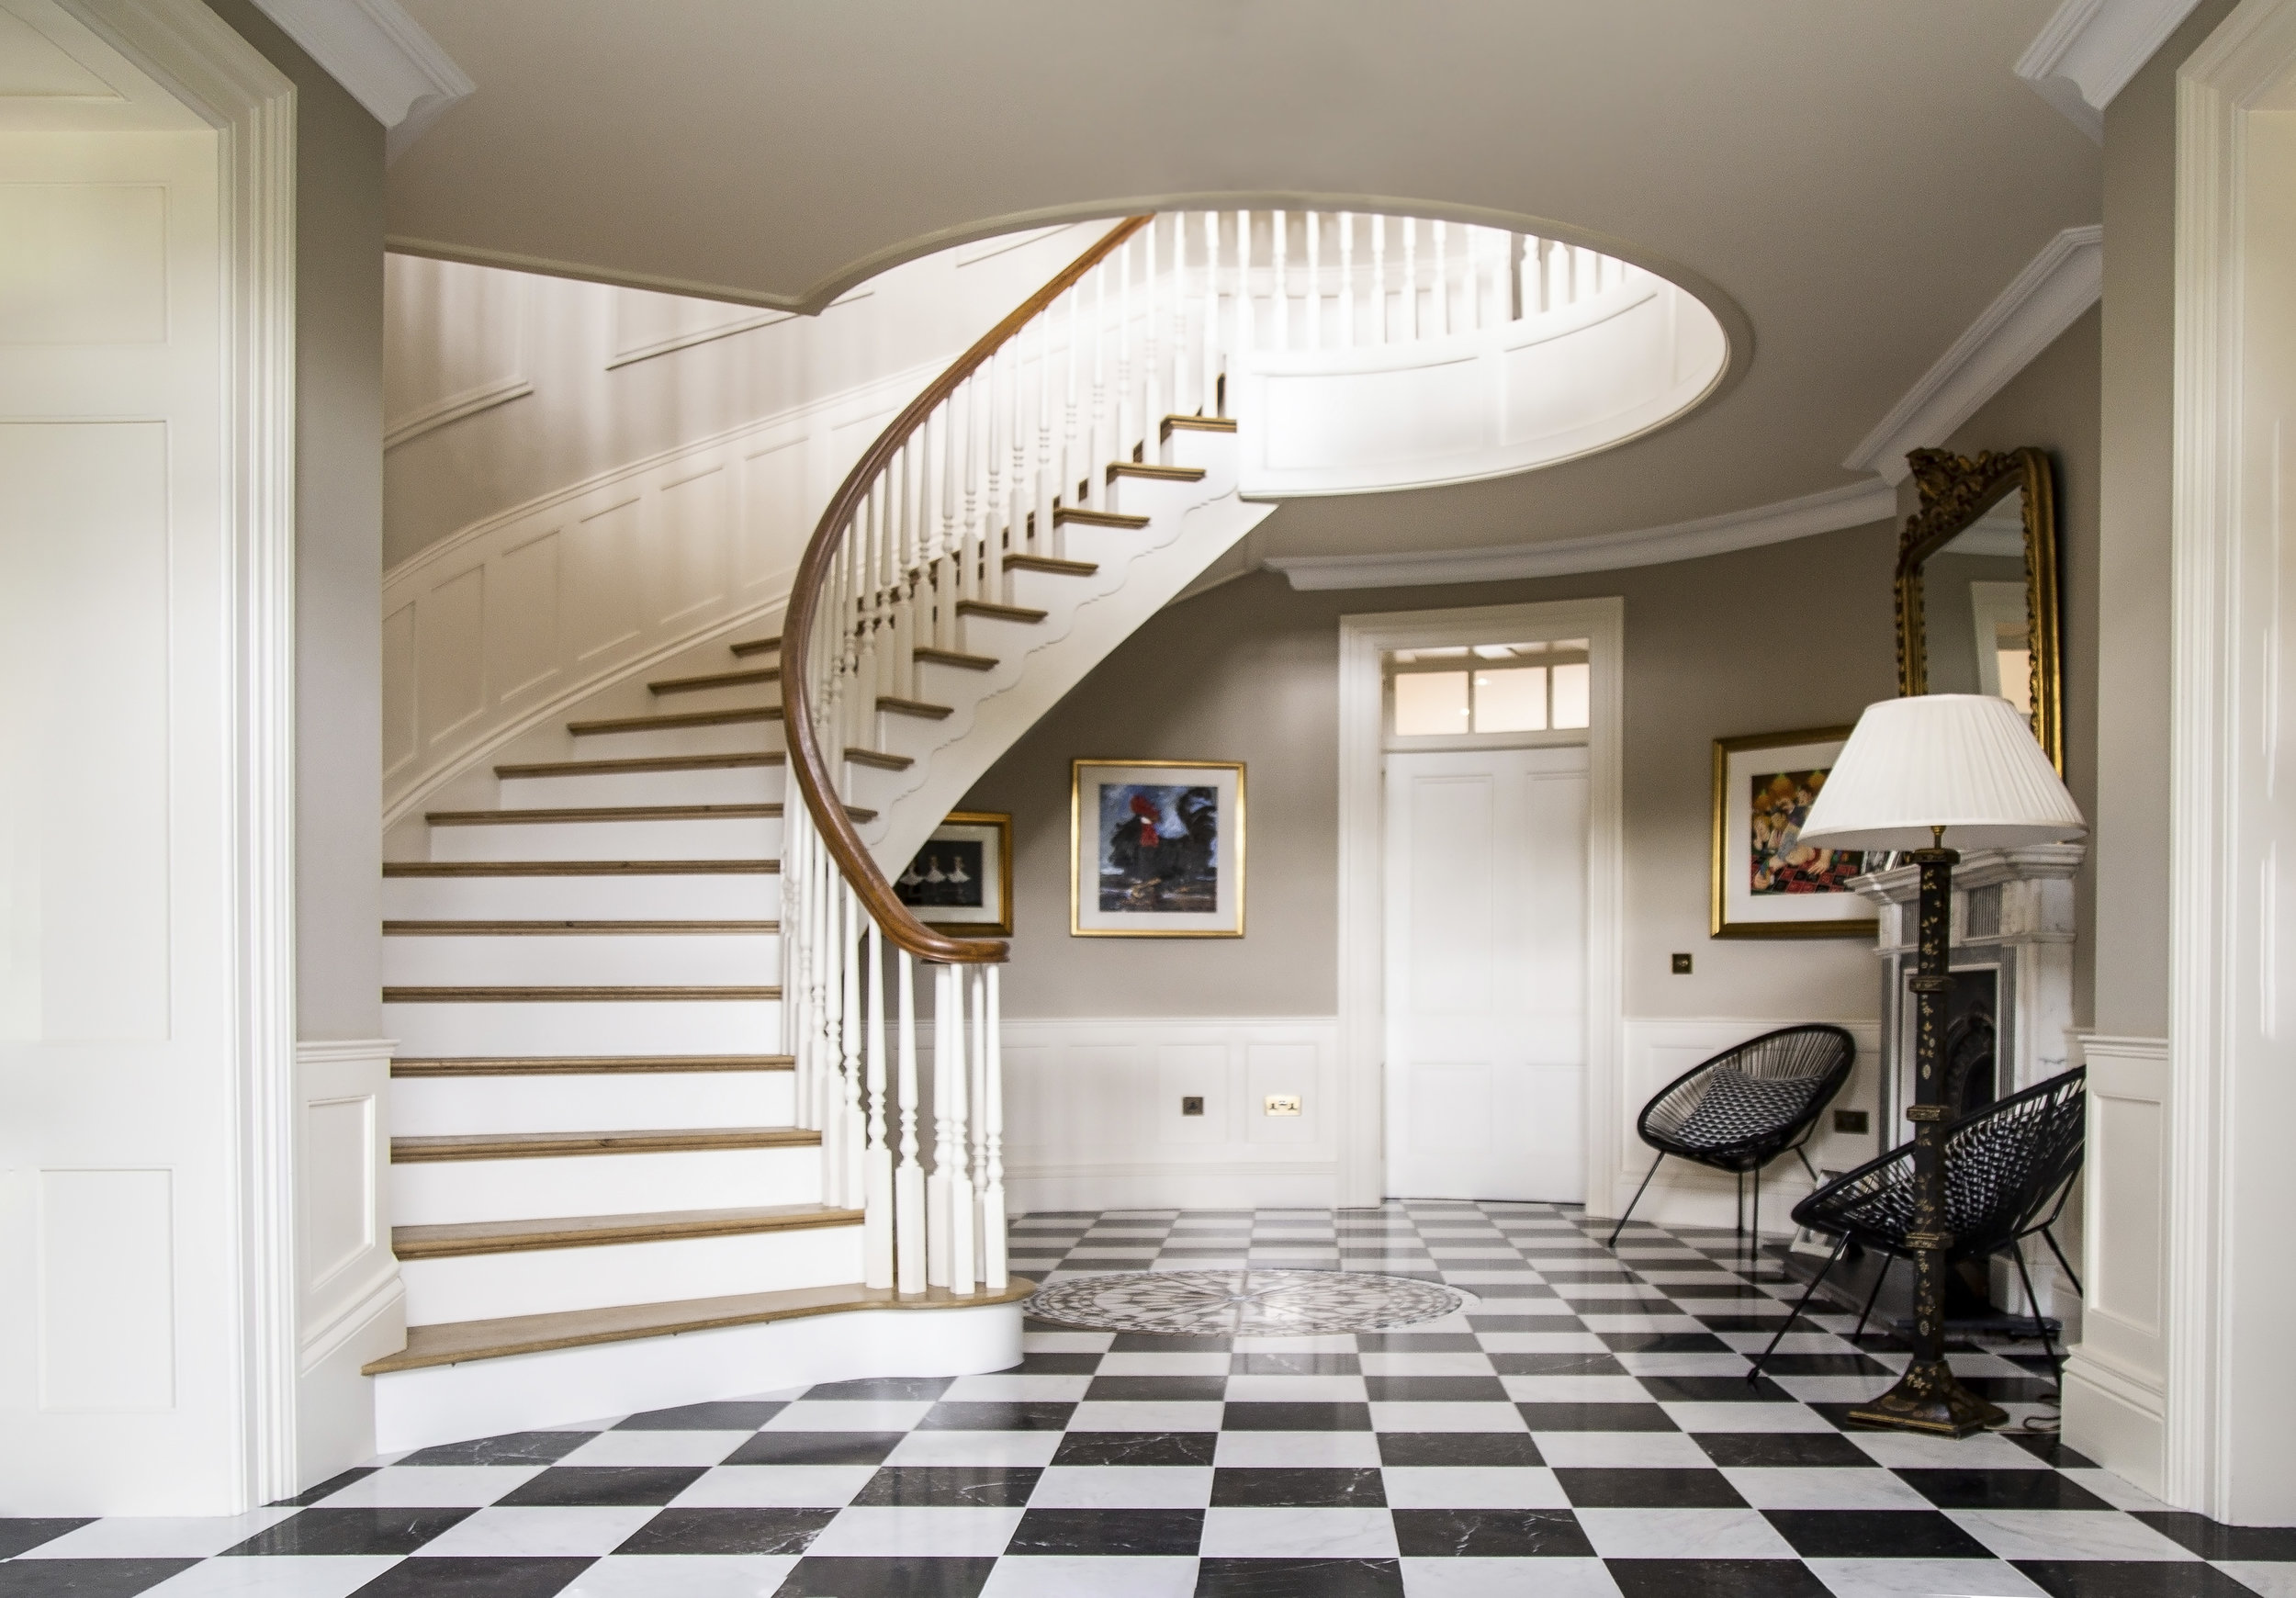 Paul_McAlister_Architects_Georgian_Interior_Stairscase-.jpg